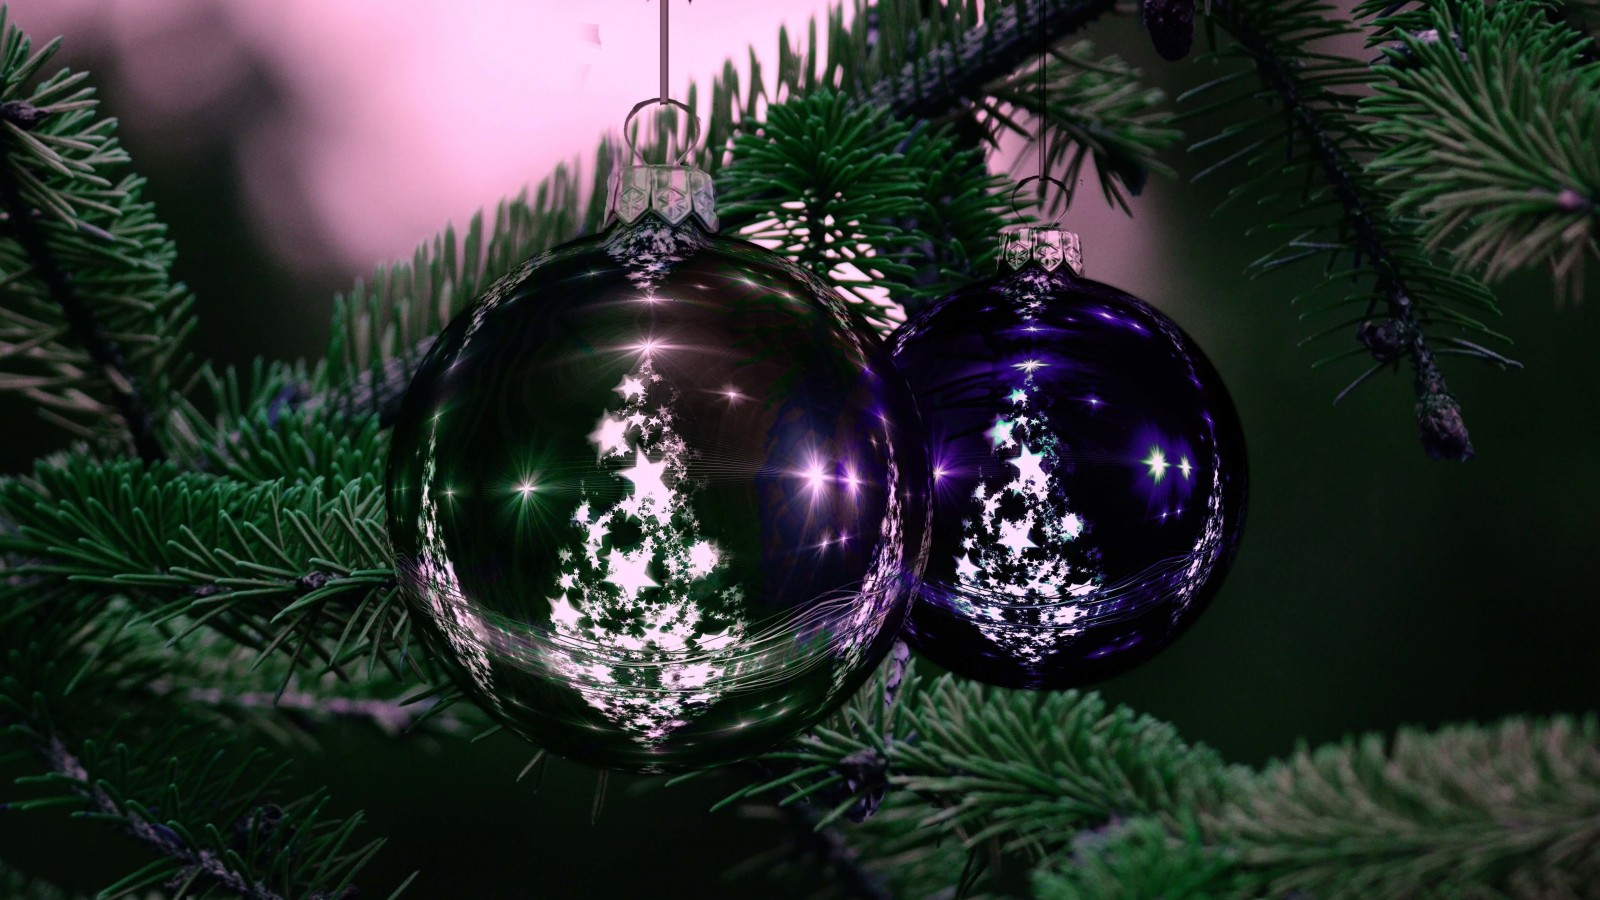 Beautiful Christmas Tree Ornaments Wallpaper for Desktop 1600x900